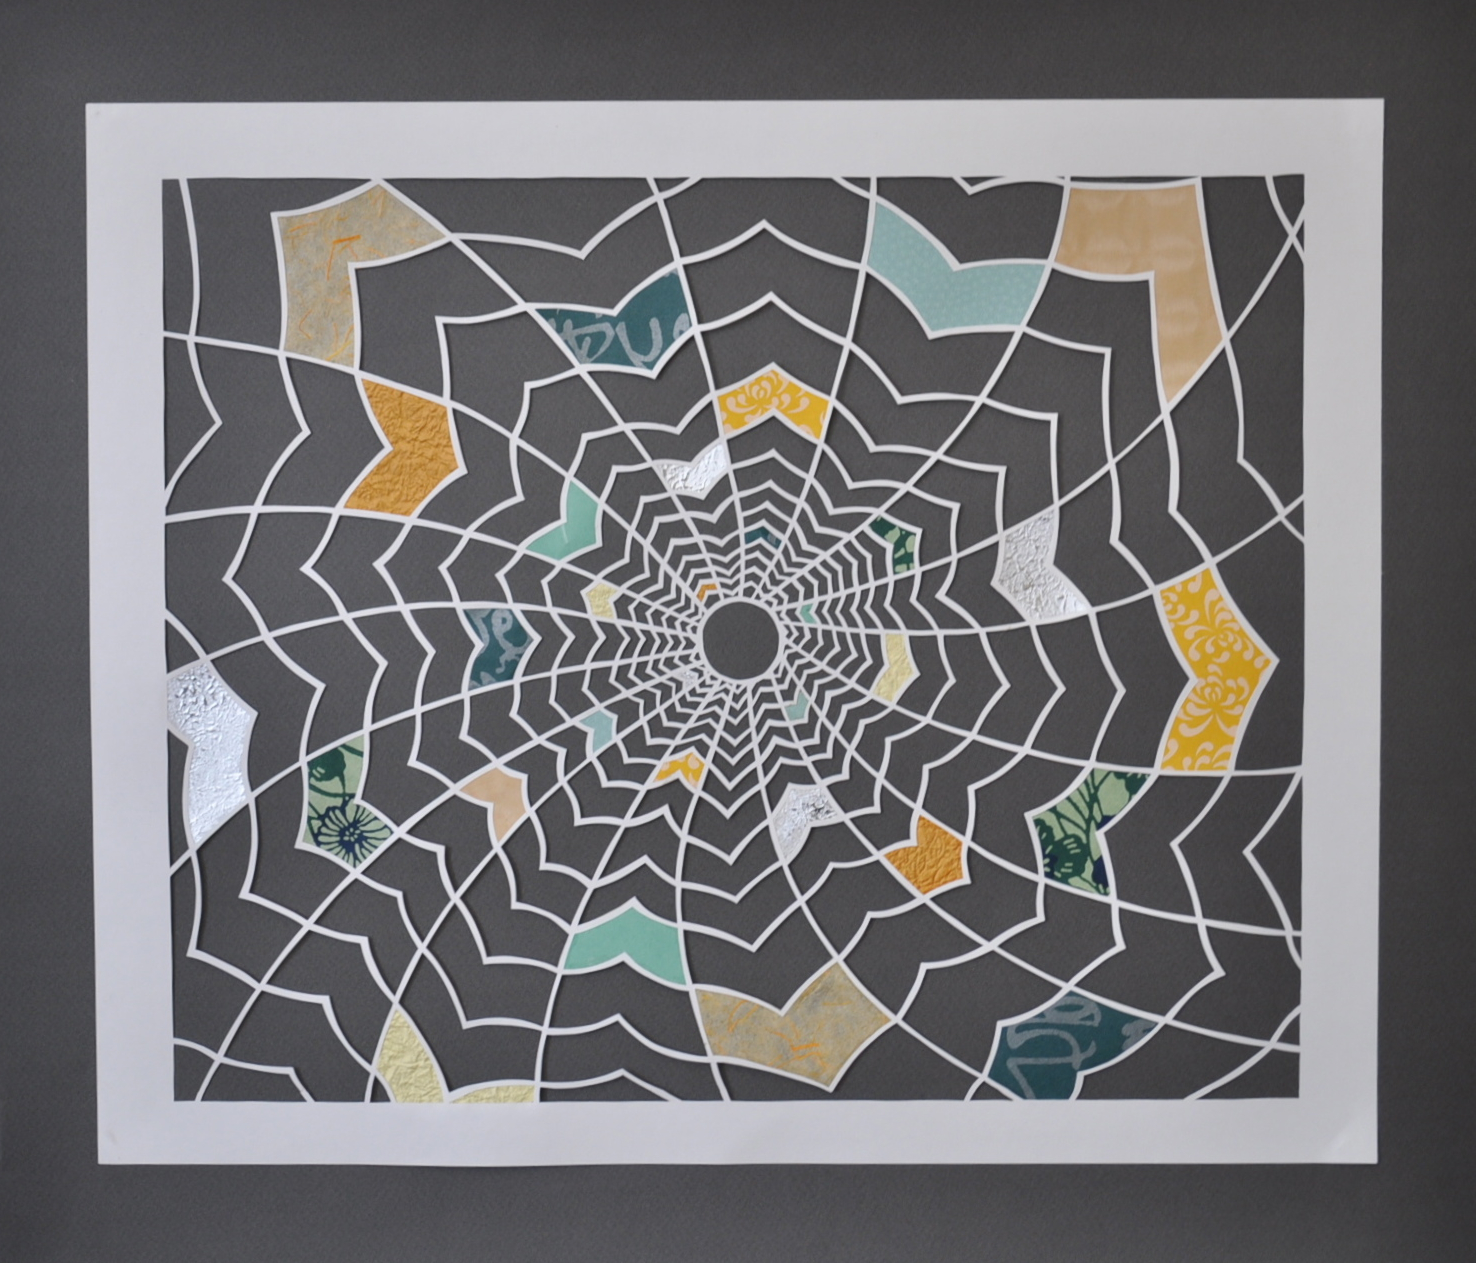 """""""Geomancy""""   Measures 17 x 19 1/2 inches. White paper cut with inserts of multi-coloured textured Japanese art papers against a dark grey background.  Available for purchase on  Etsy ."""